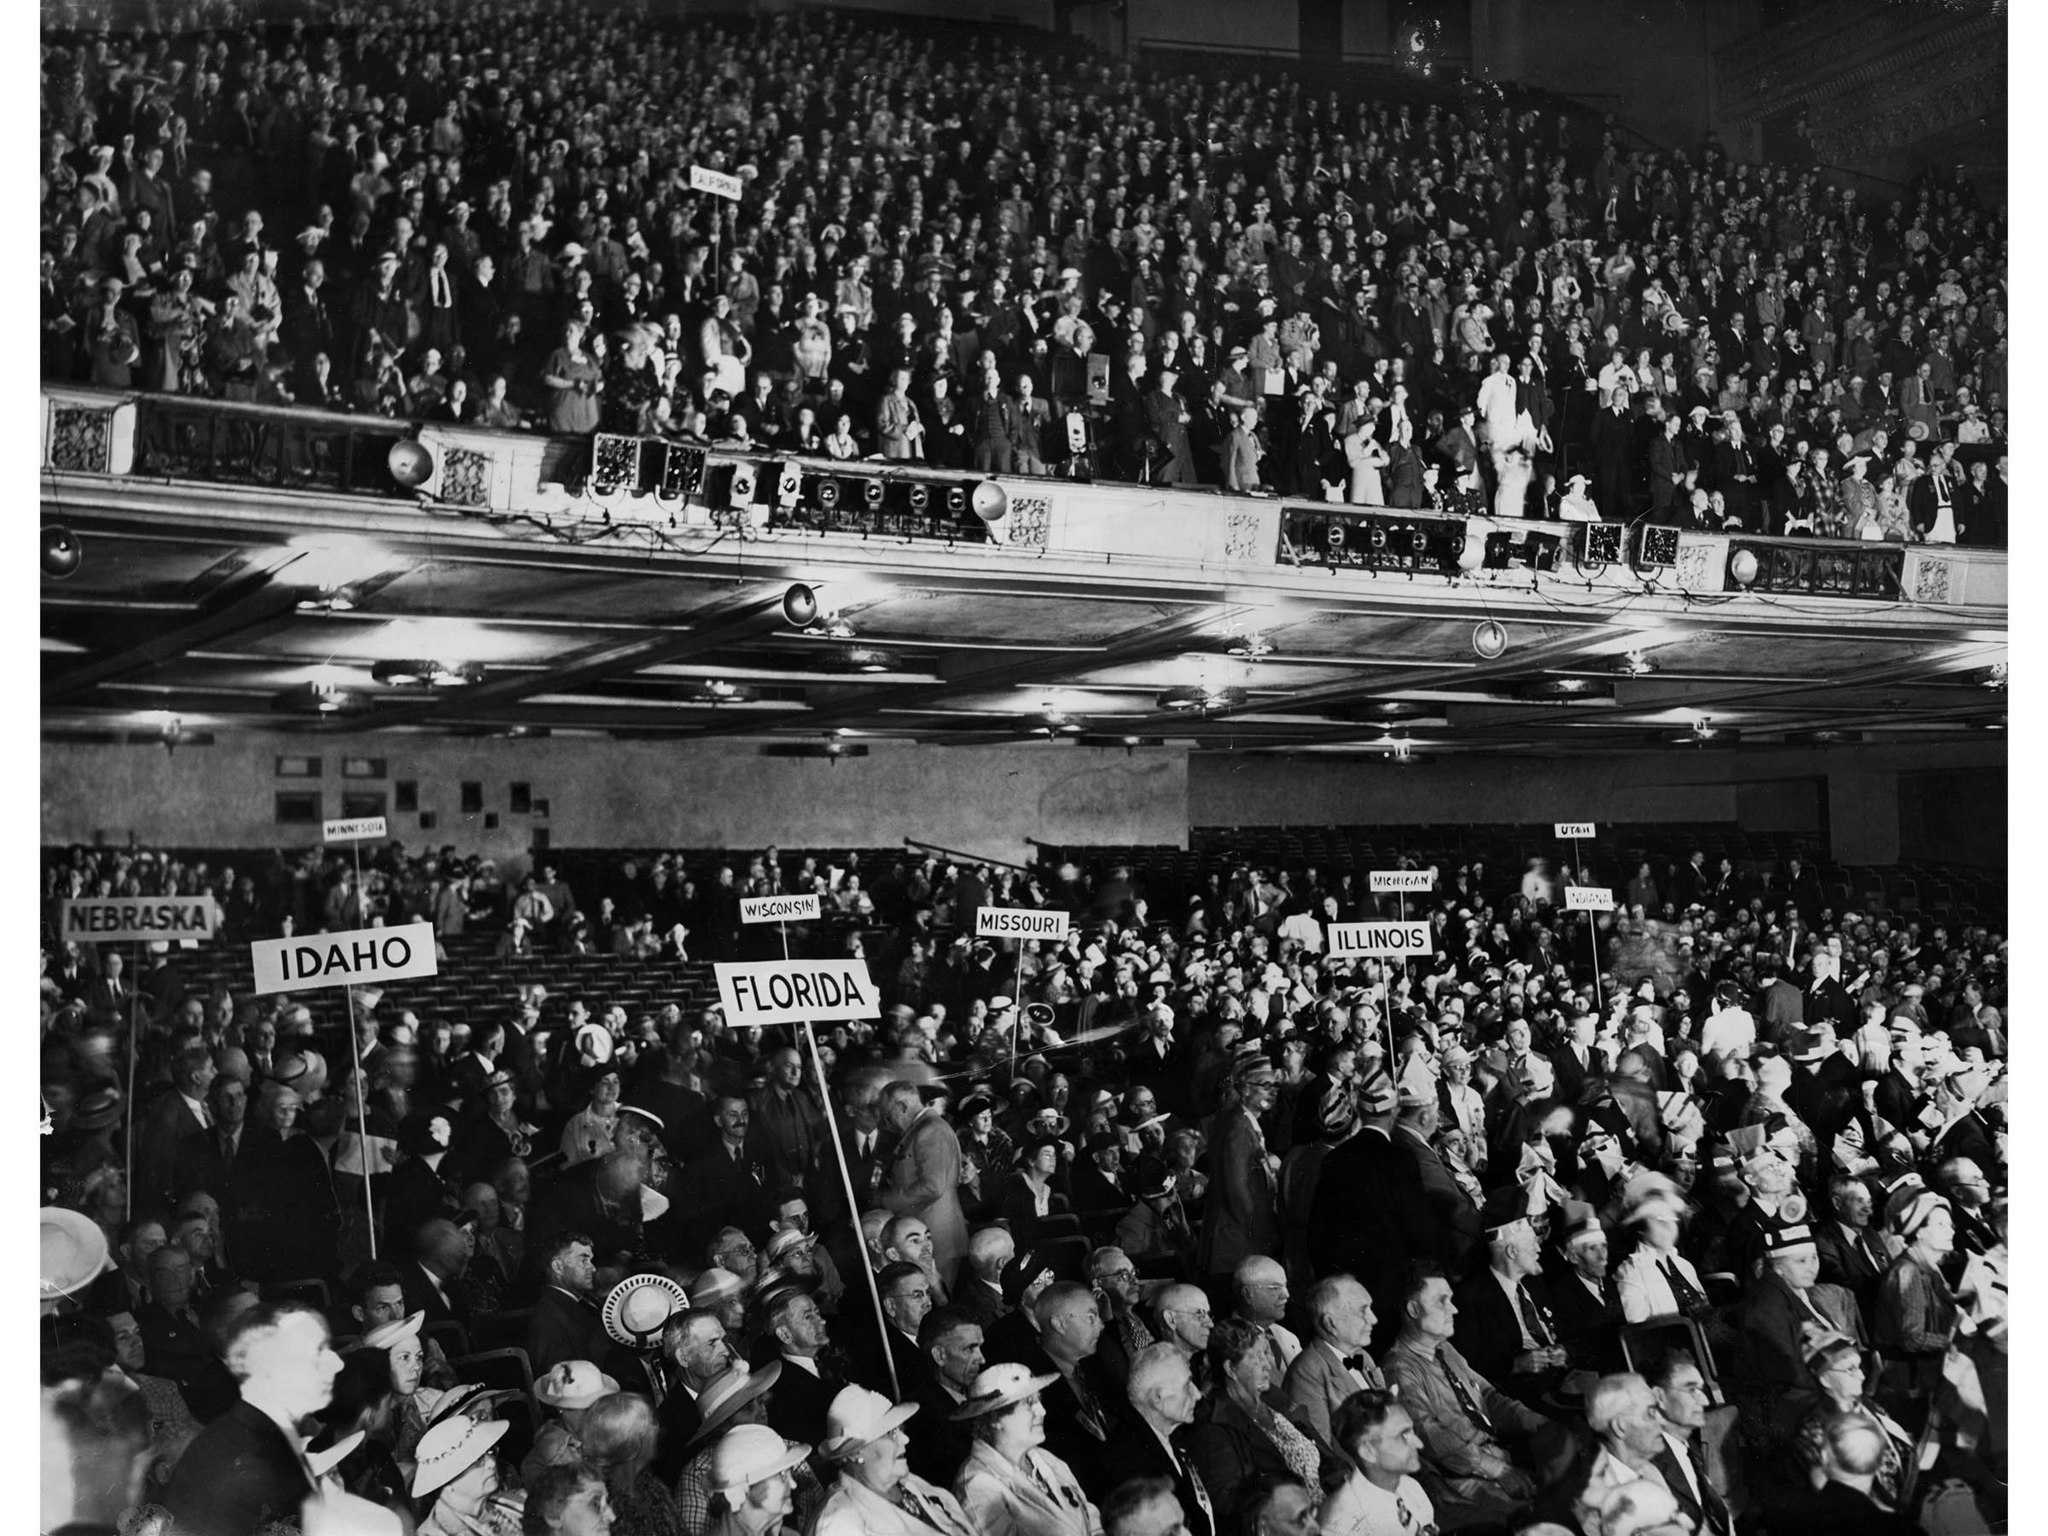 June 20, 1938: Main hall at Shrine Auditorium during opening of third annual Townsend pension plan c